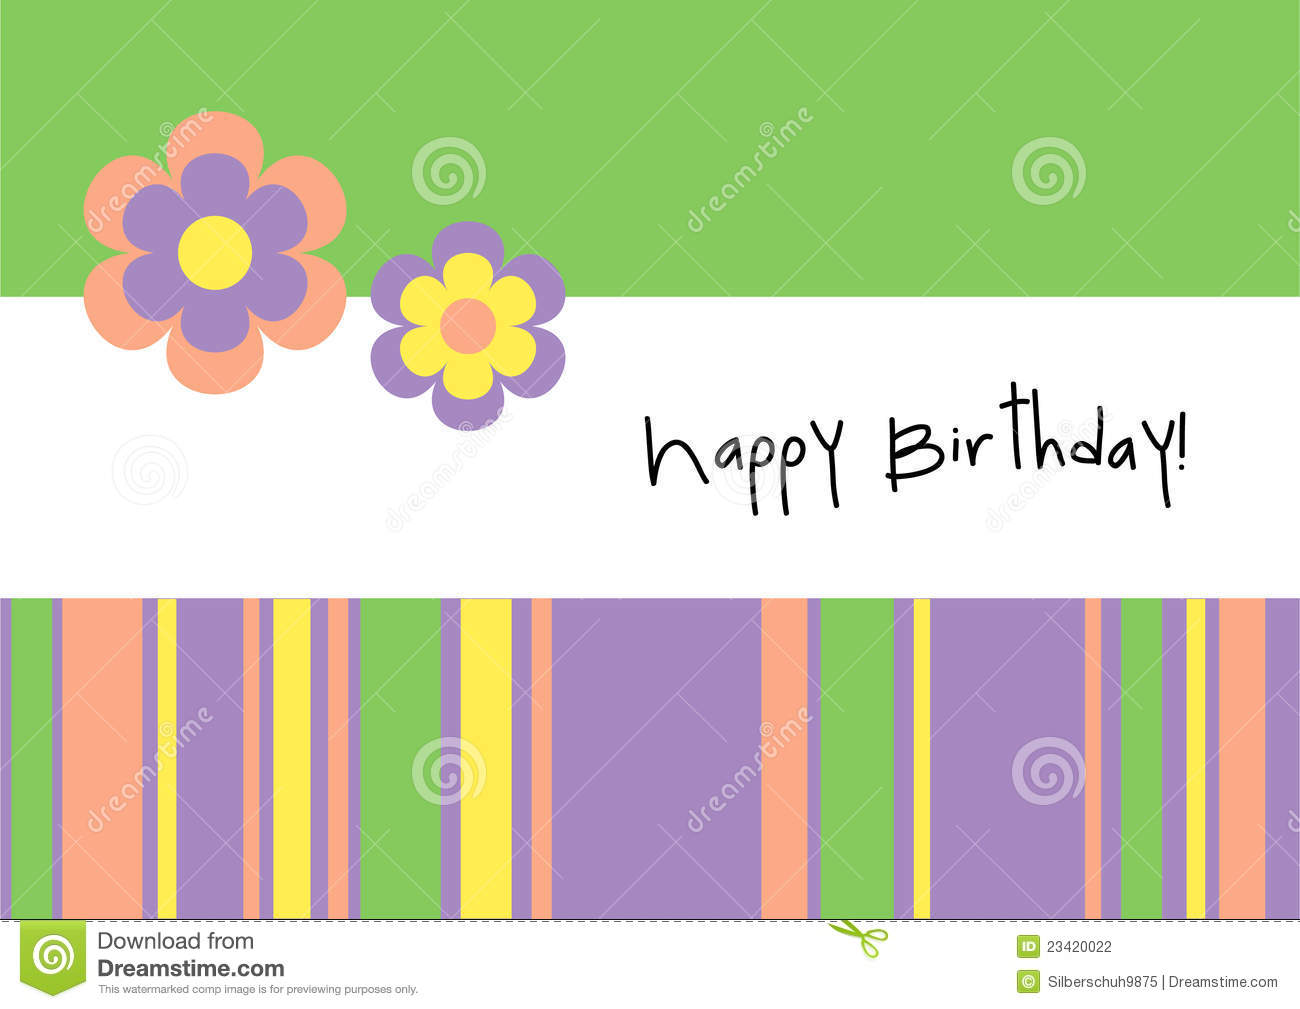 happy birthday card wallpaper ; happy-birthday-card-templates-the-art-mad-wallpapers-flowers-green-rectangle-shape-black-letters-download-from-dreamstim